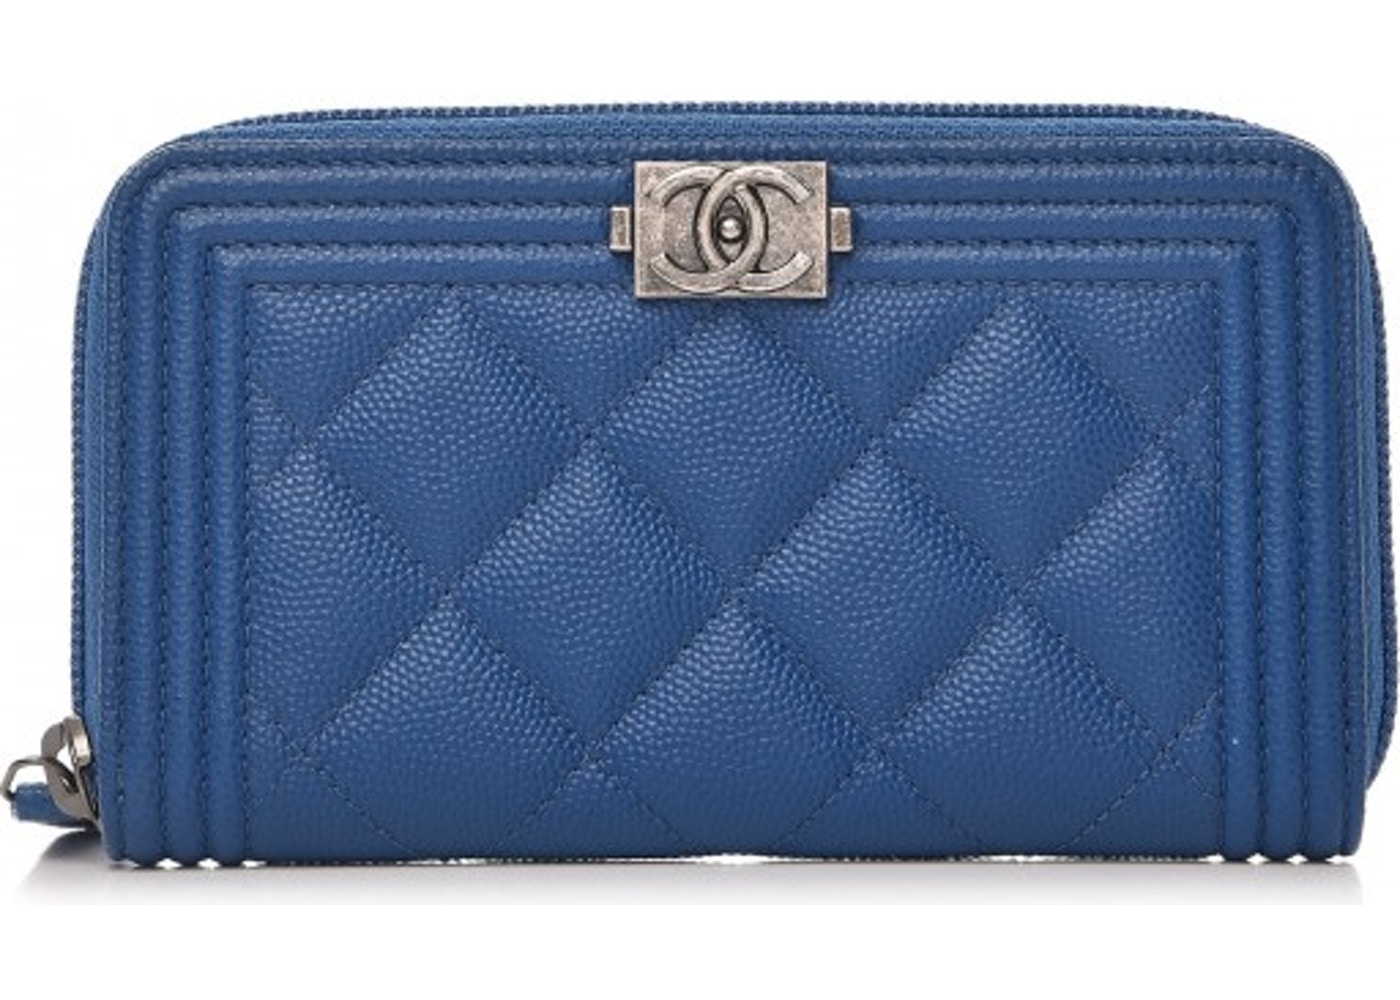 60645bcdacd2 Chanel Boy Zip Around Wallet Quilted Diamond Small Blue. Quilted Diamond  Small Blue